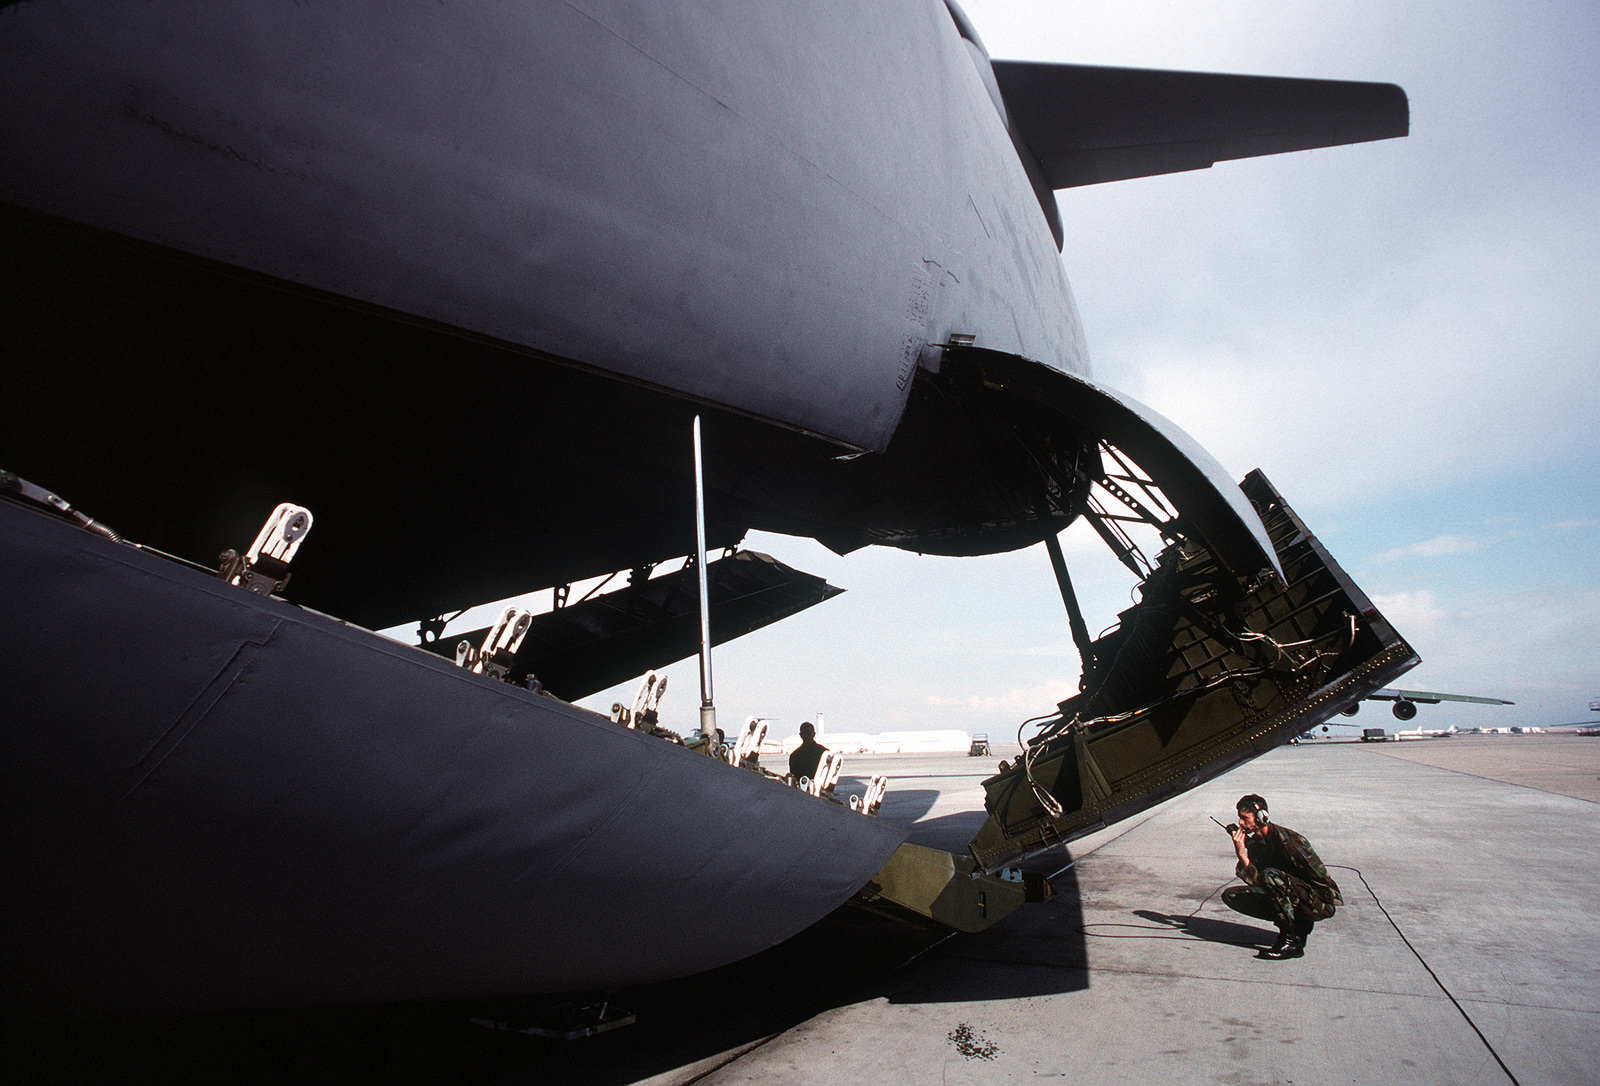 Rear cargo doors of oneof the two C-5s that were modified to accommodate outsize shuttle component parts. Both C-5Cs are assigned to the 60th Airlift Wing at Travis AFB, Calif. The modified cargo space is as large as the space shuttle's cargo bay. Exact Date Shot Unknown .Published in AIRMAN Magazine November 1994